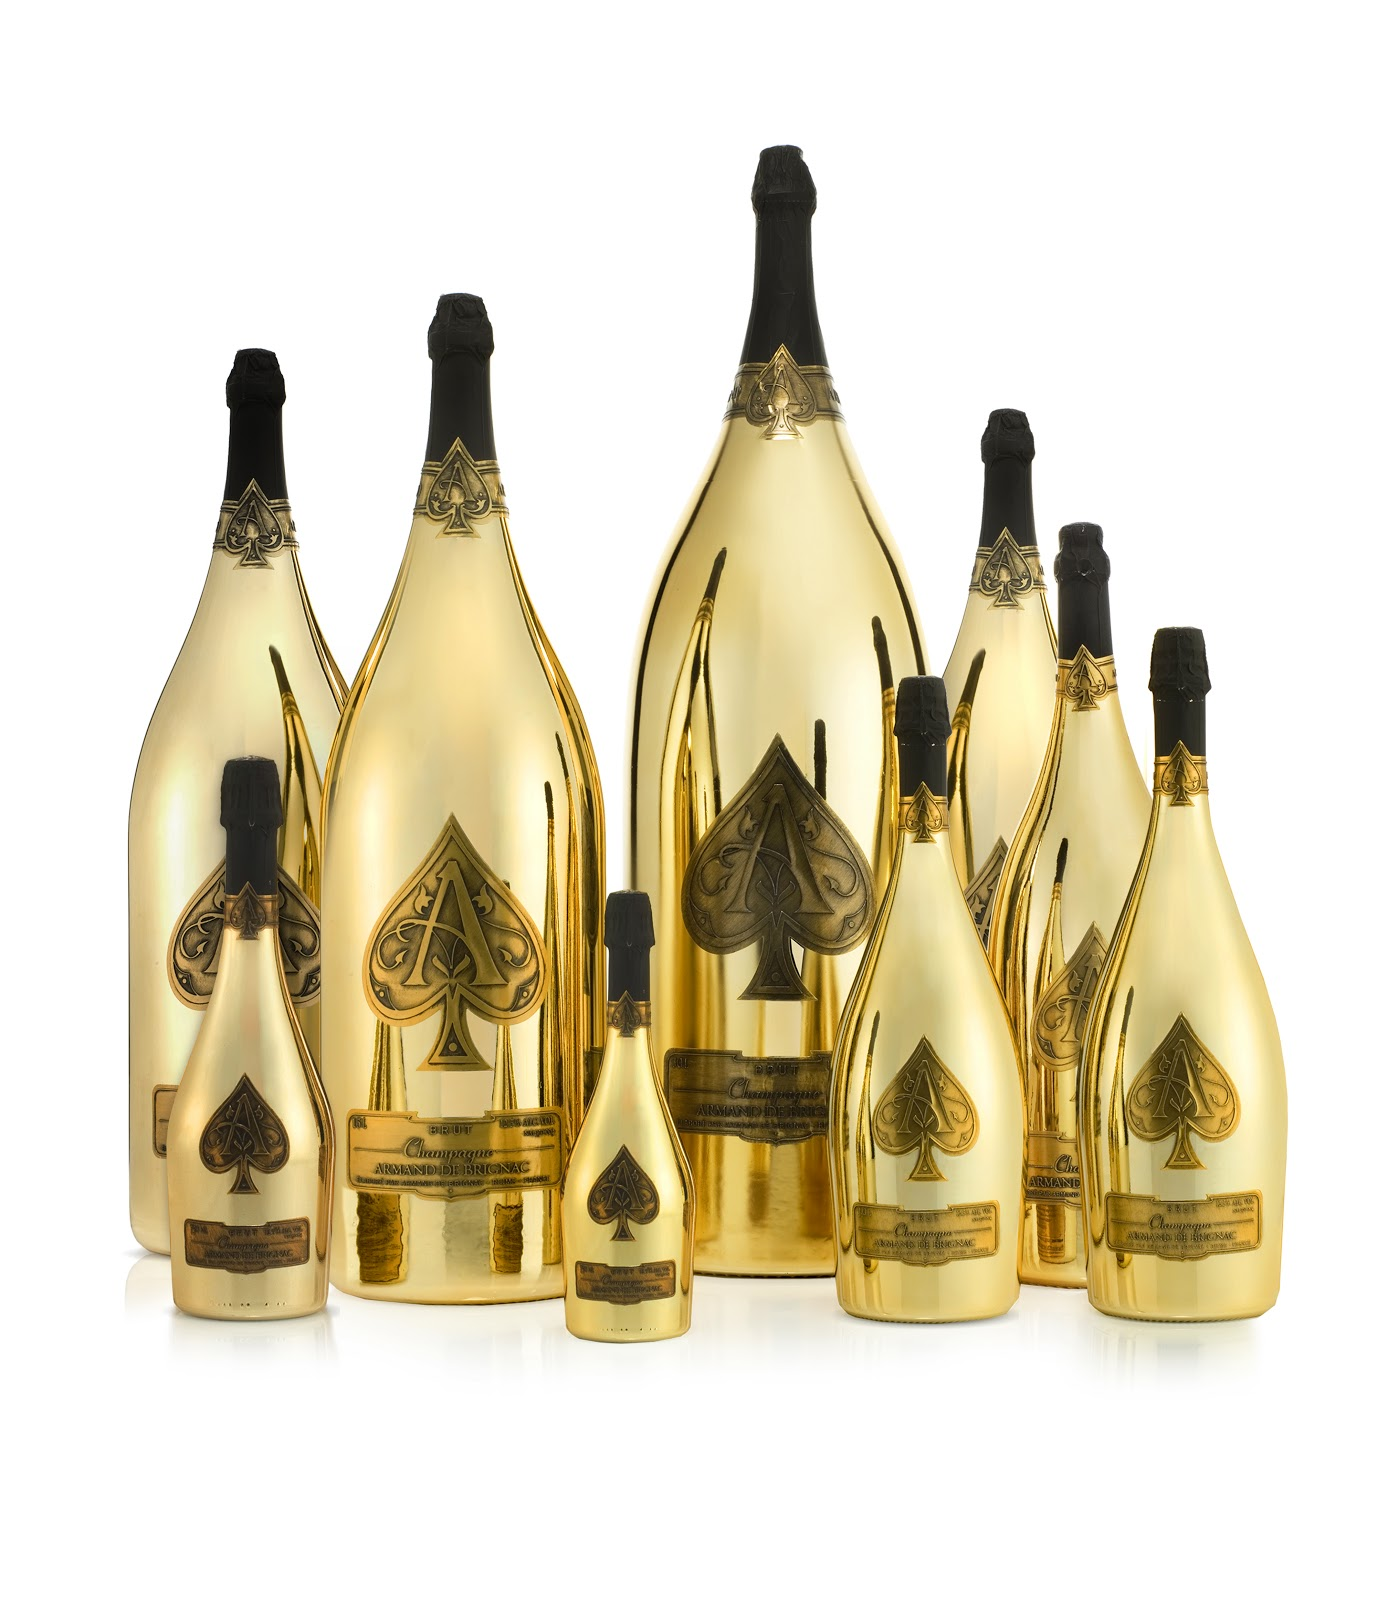 Wine And The City Ace Of Spades Launches 500k Dynastie